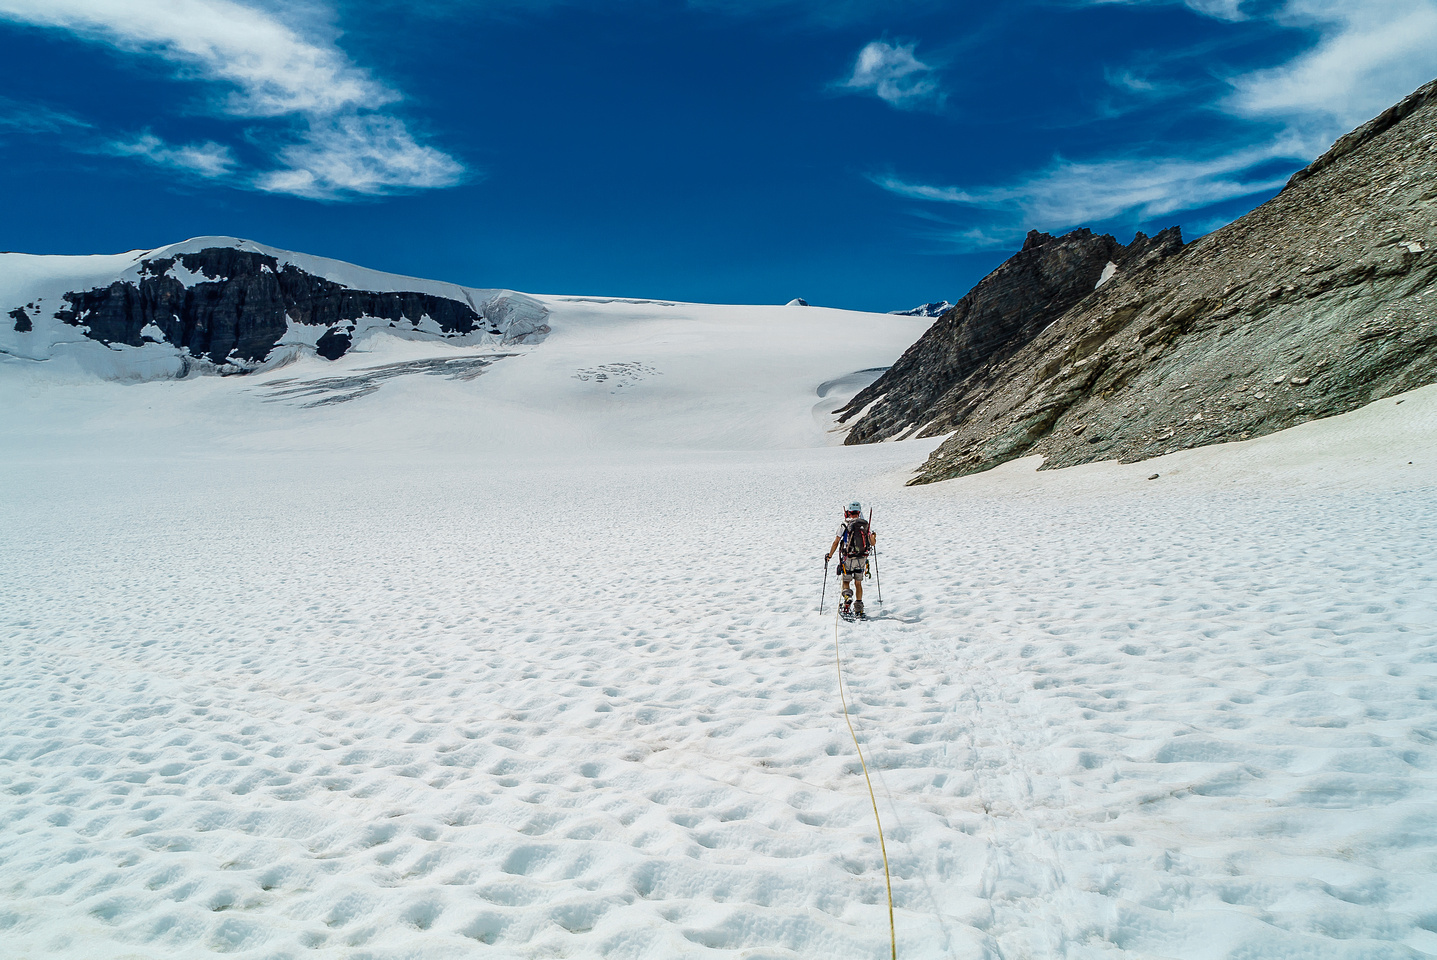 Starting the long snowshoe trek, back up the Lyell Glacier. We're not messing around with the rope either - snow bridges are weakening in the hot sun.